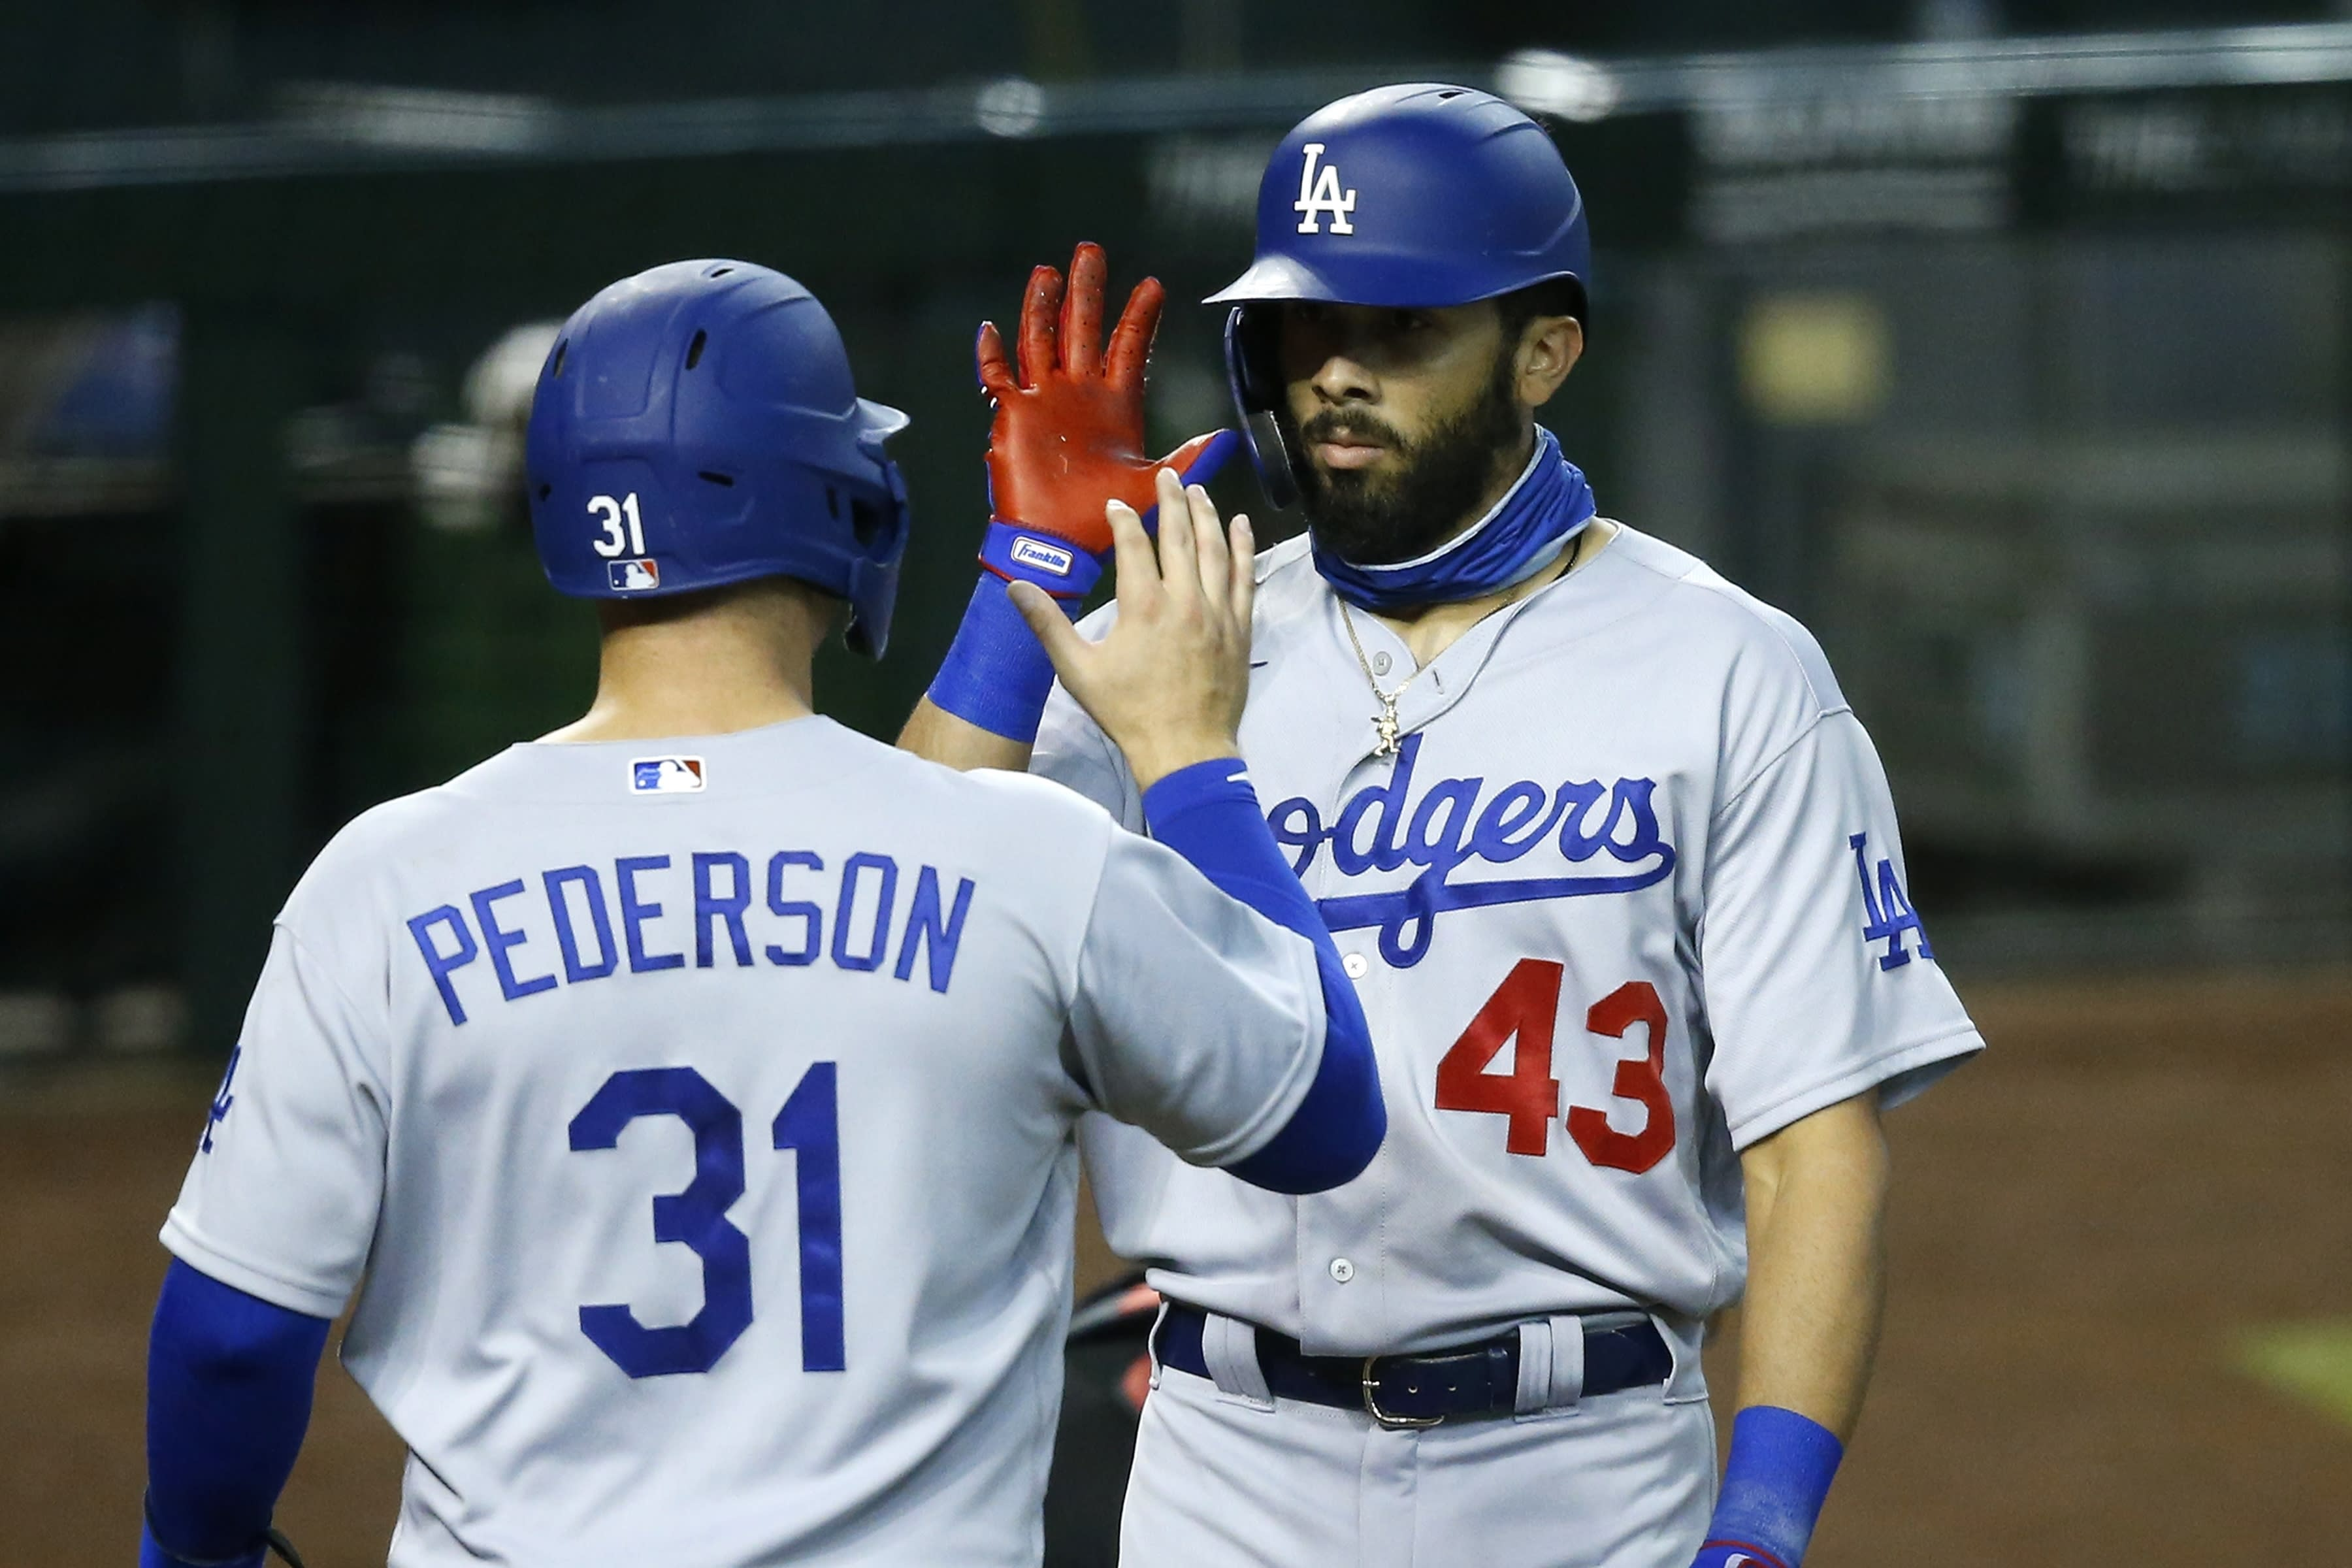 Los Angeles Dodgers' Edwin Rios (43) celebrates his two-run home run against the Arizona Diamondbacks with Joc Pederson (31) during the fourth inning of a baseball game Saturday, Aug. 1, 2020, in Phoenix. (AP Photo/Ross D. Franklin)